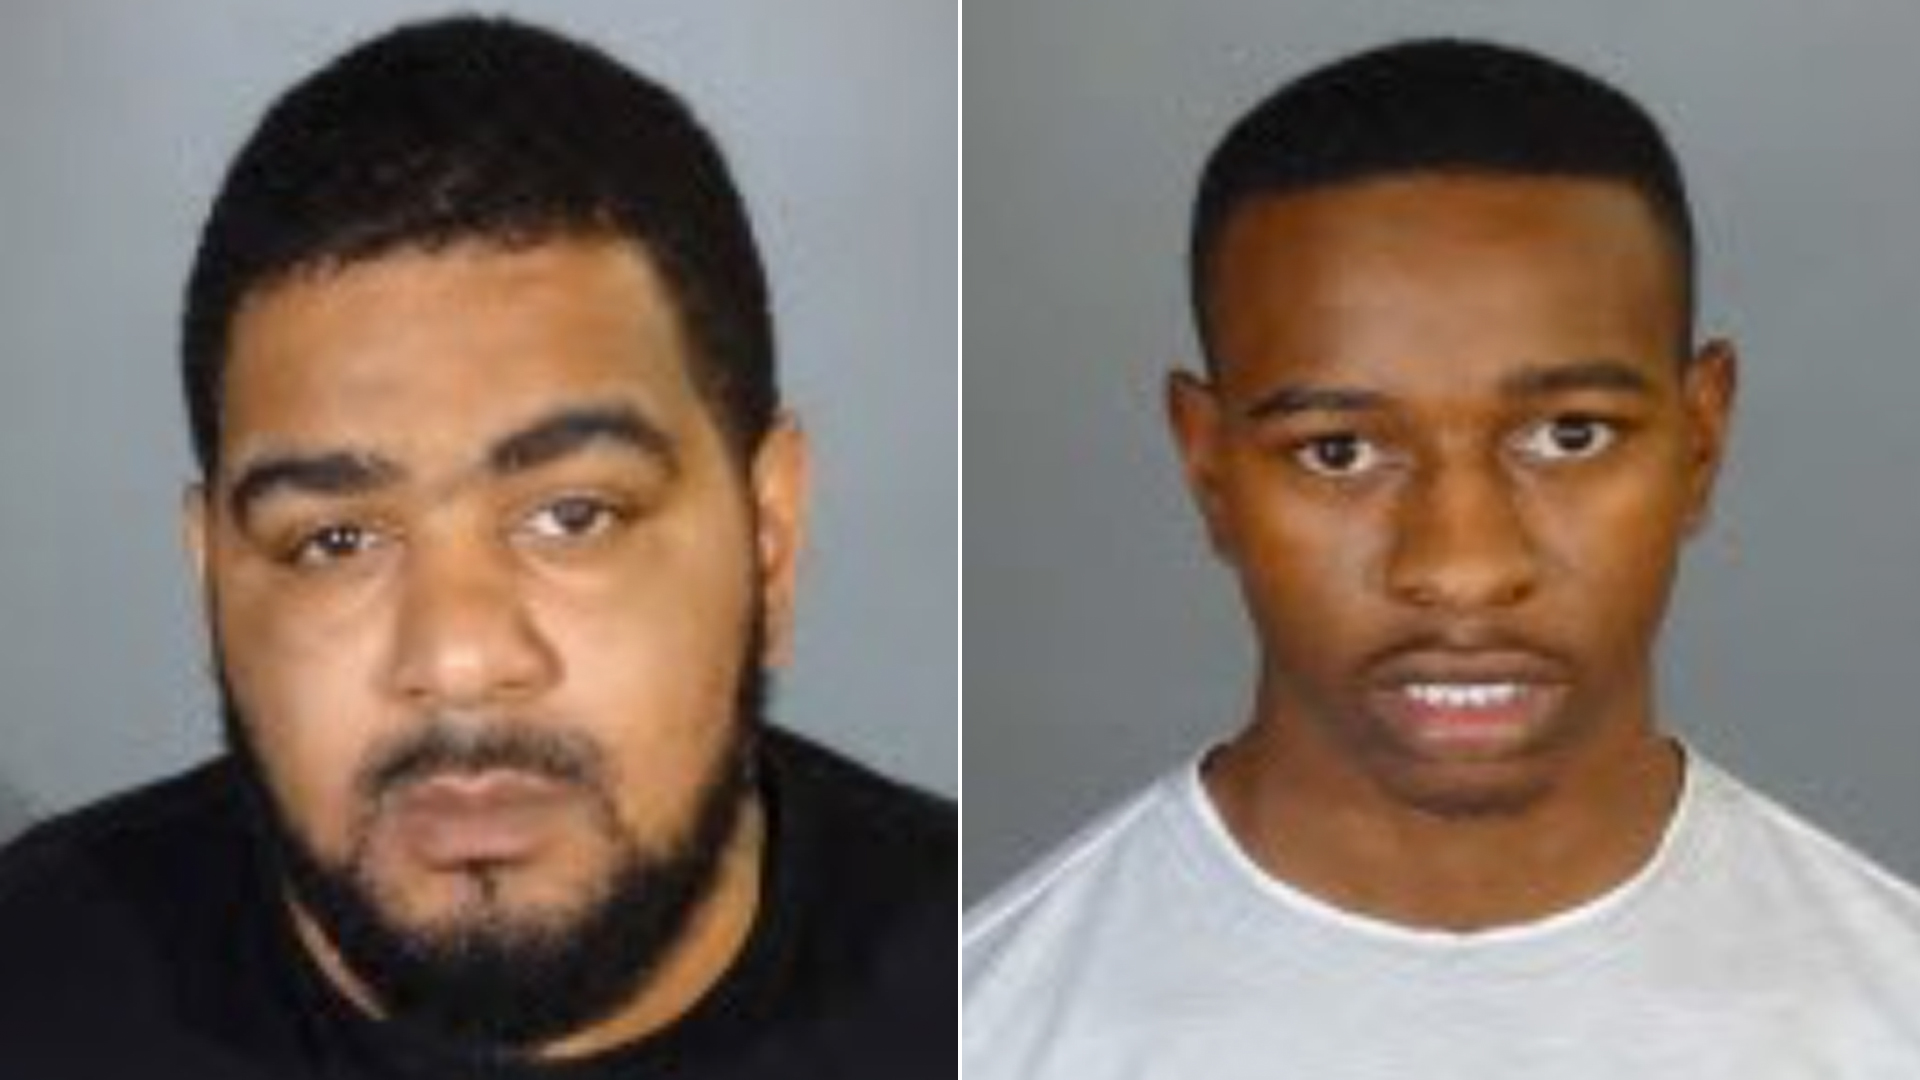 Devian Lockhart, left, and Christopher Curry are seen in booking photos released by the Los Angeles Police Department on March 6, 2019.